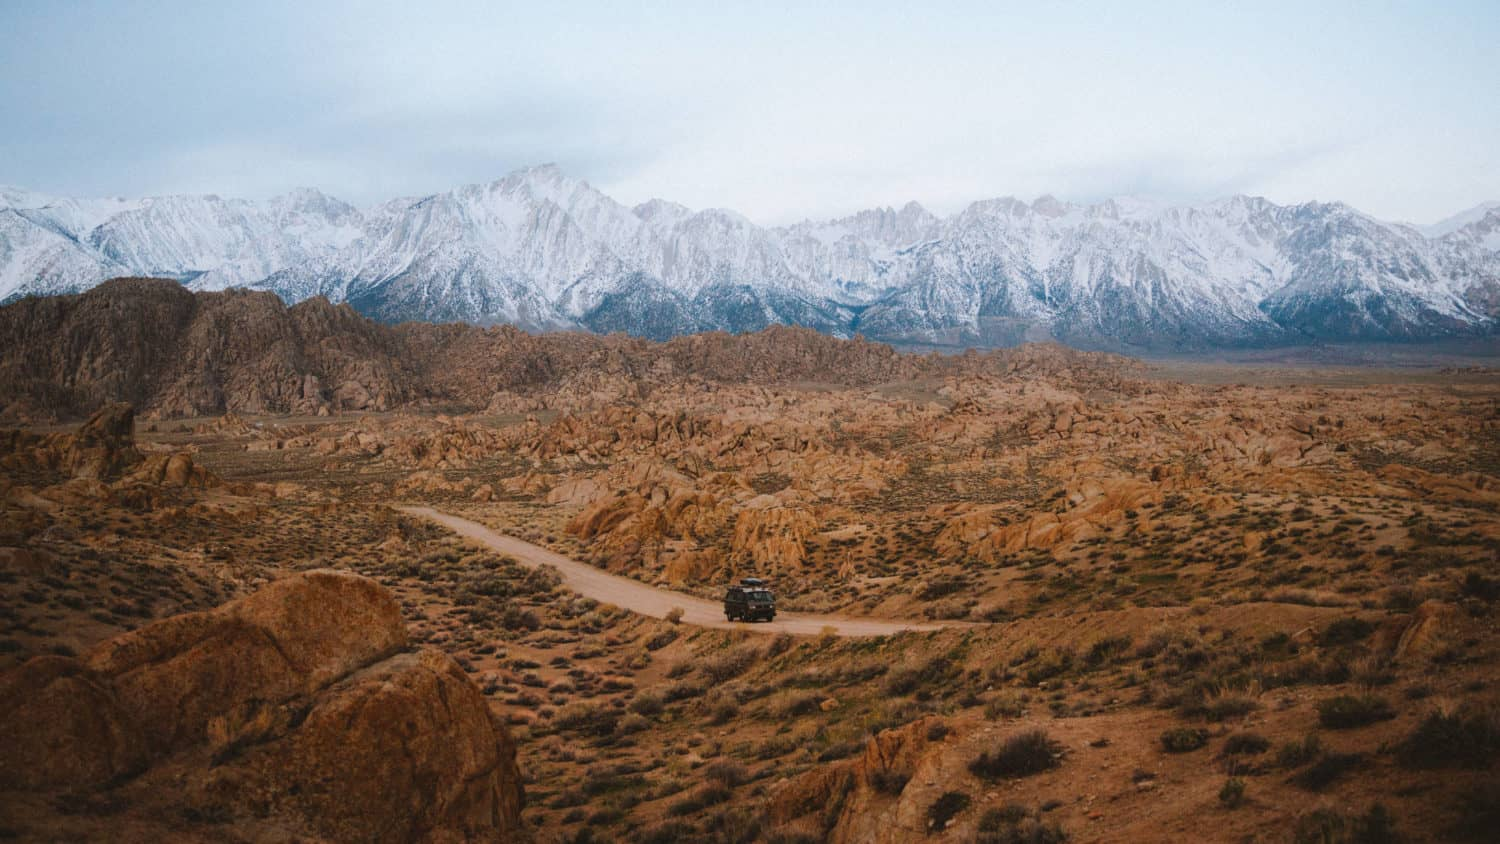 VW bus driving on Alabama Hills Movie Road